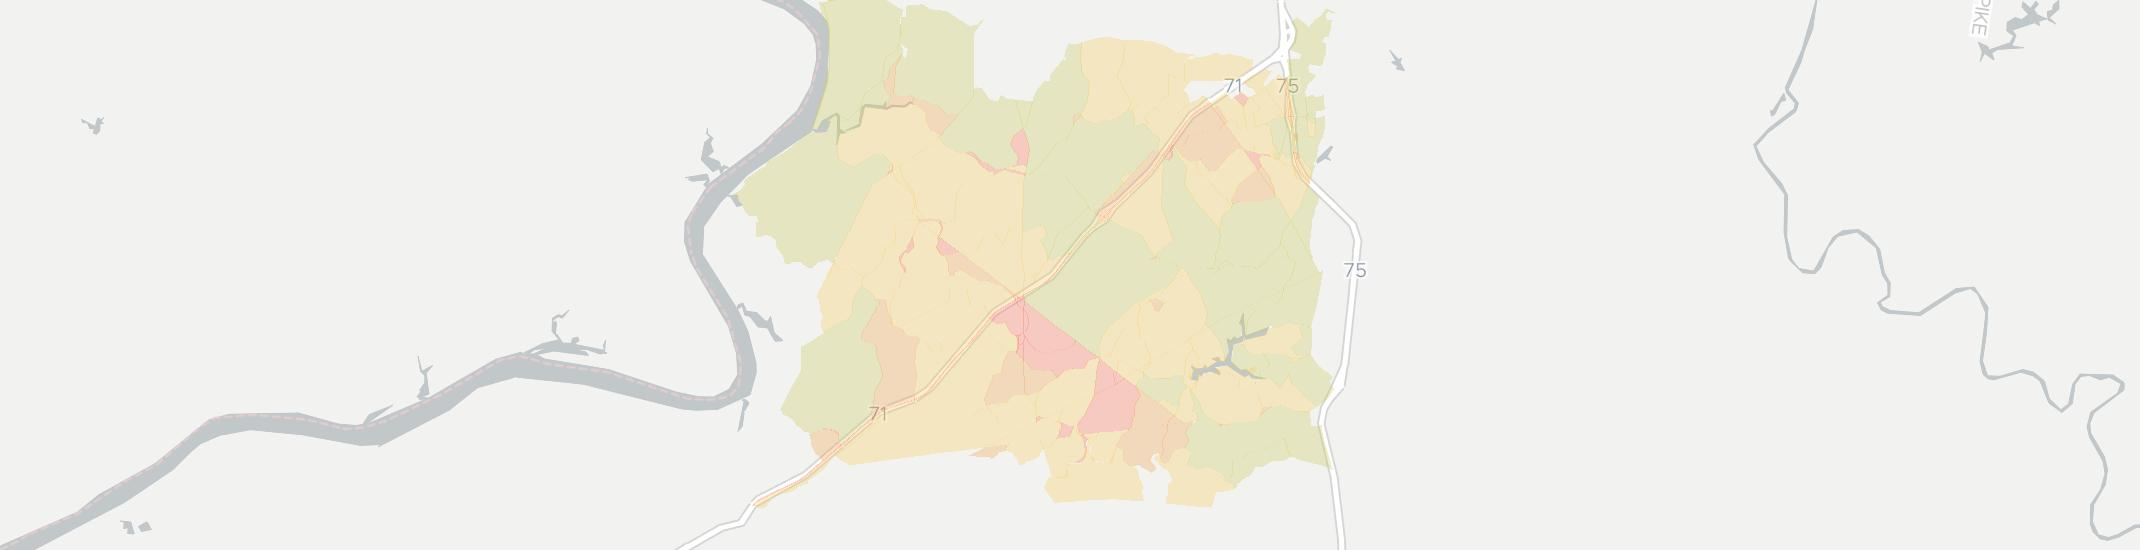 Verona Internet Competition Map. Click for interactive map.